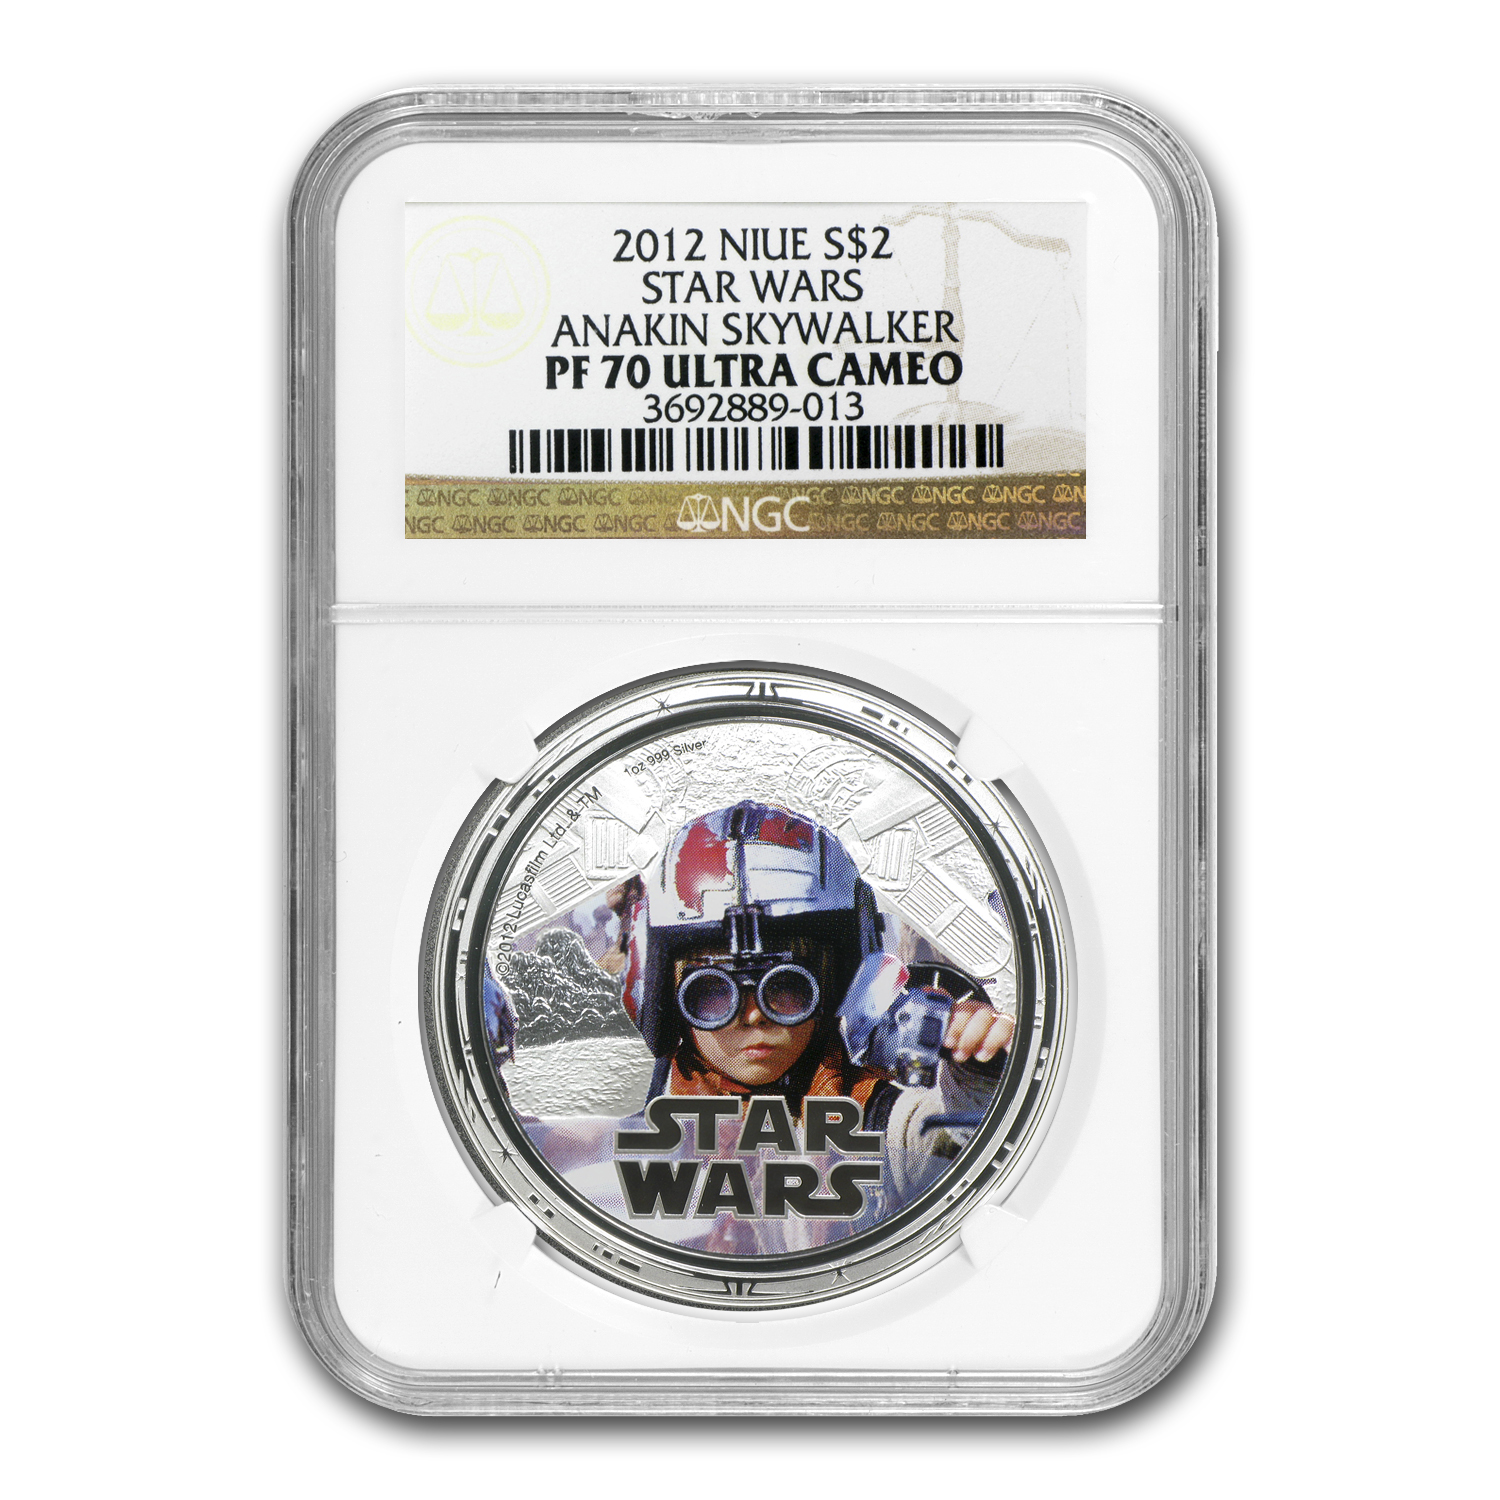 2012 1 oz Silver $2 Niue Star Wars Anakin Skywalker PF-70 NGC